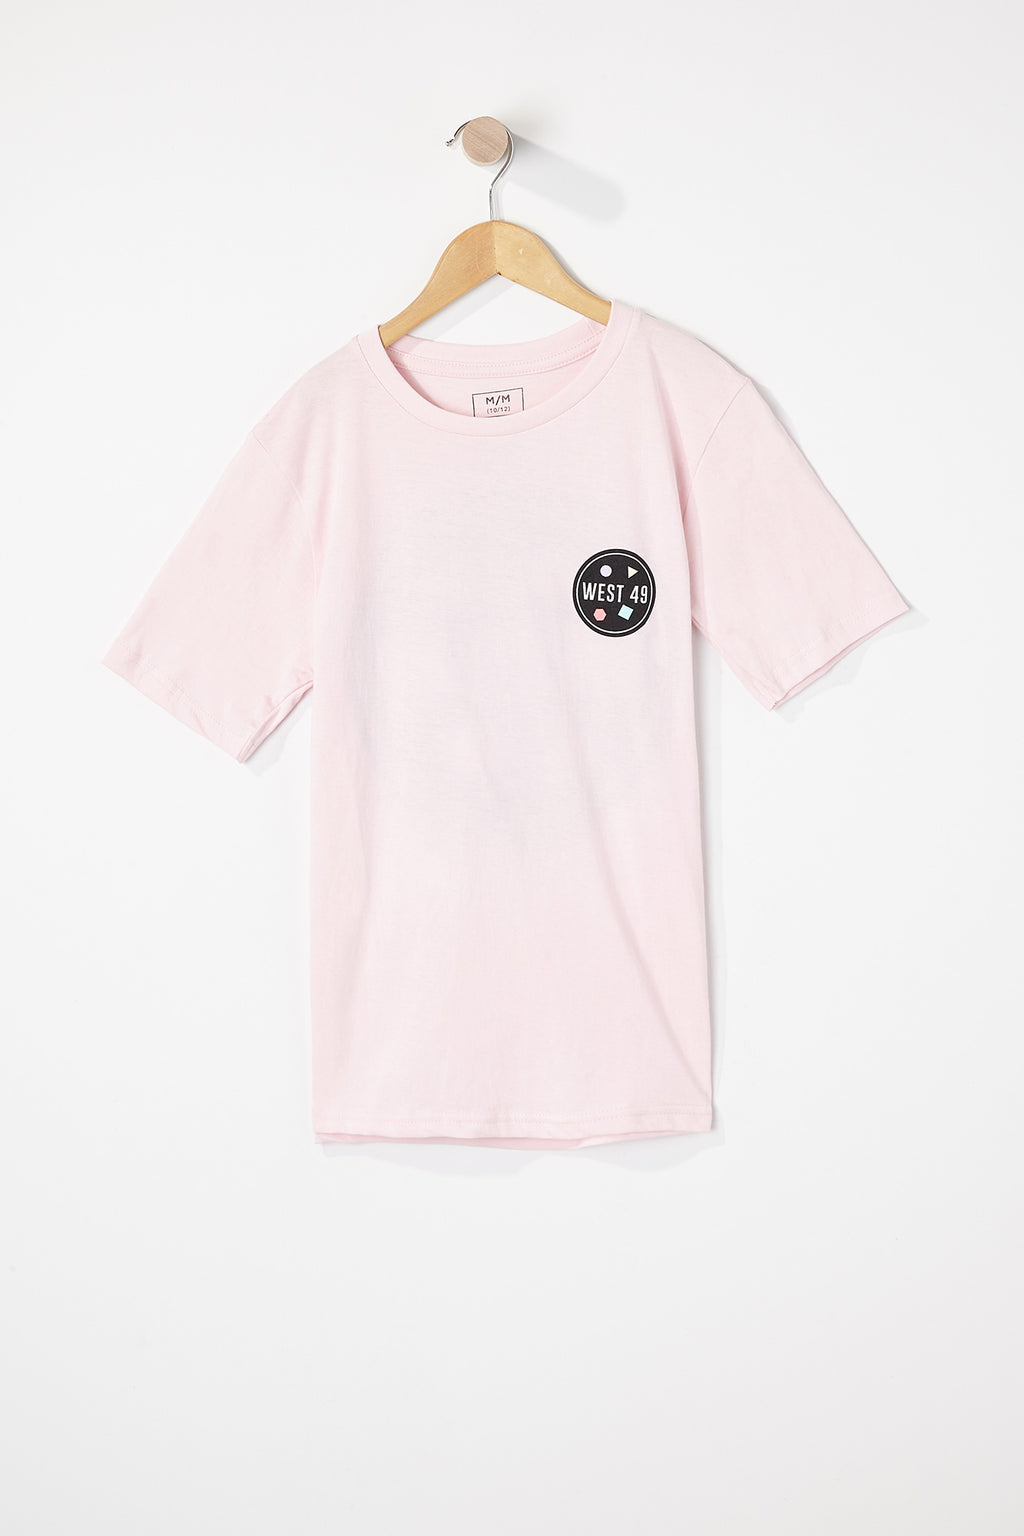 West49 Boys Circle Logo T-Shirt